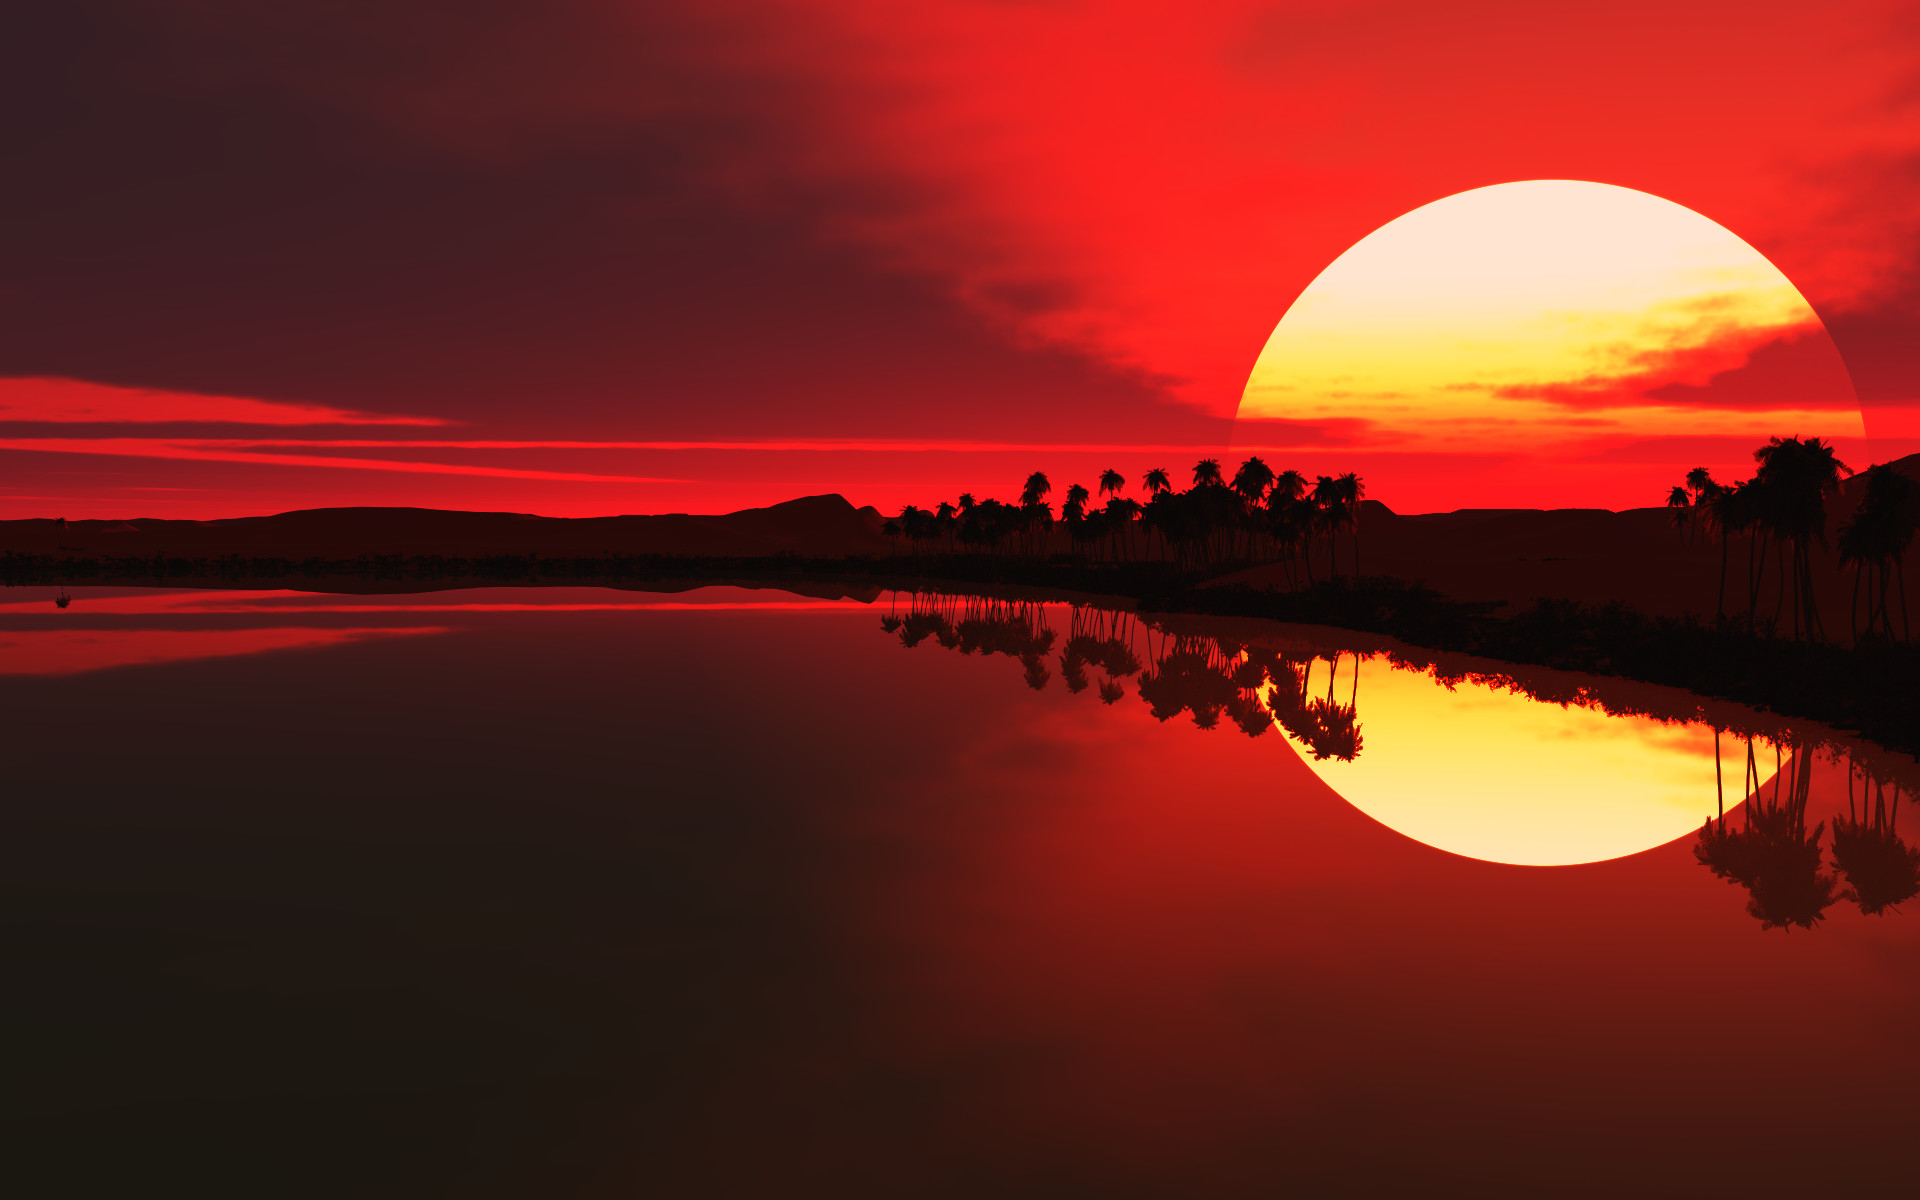 Red sunset artwork